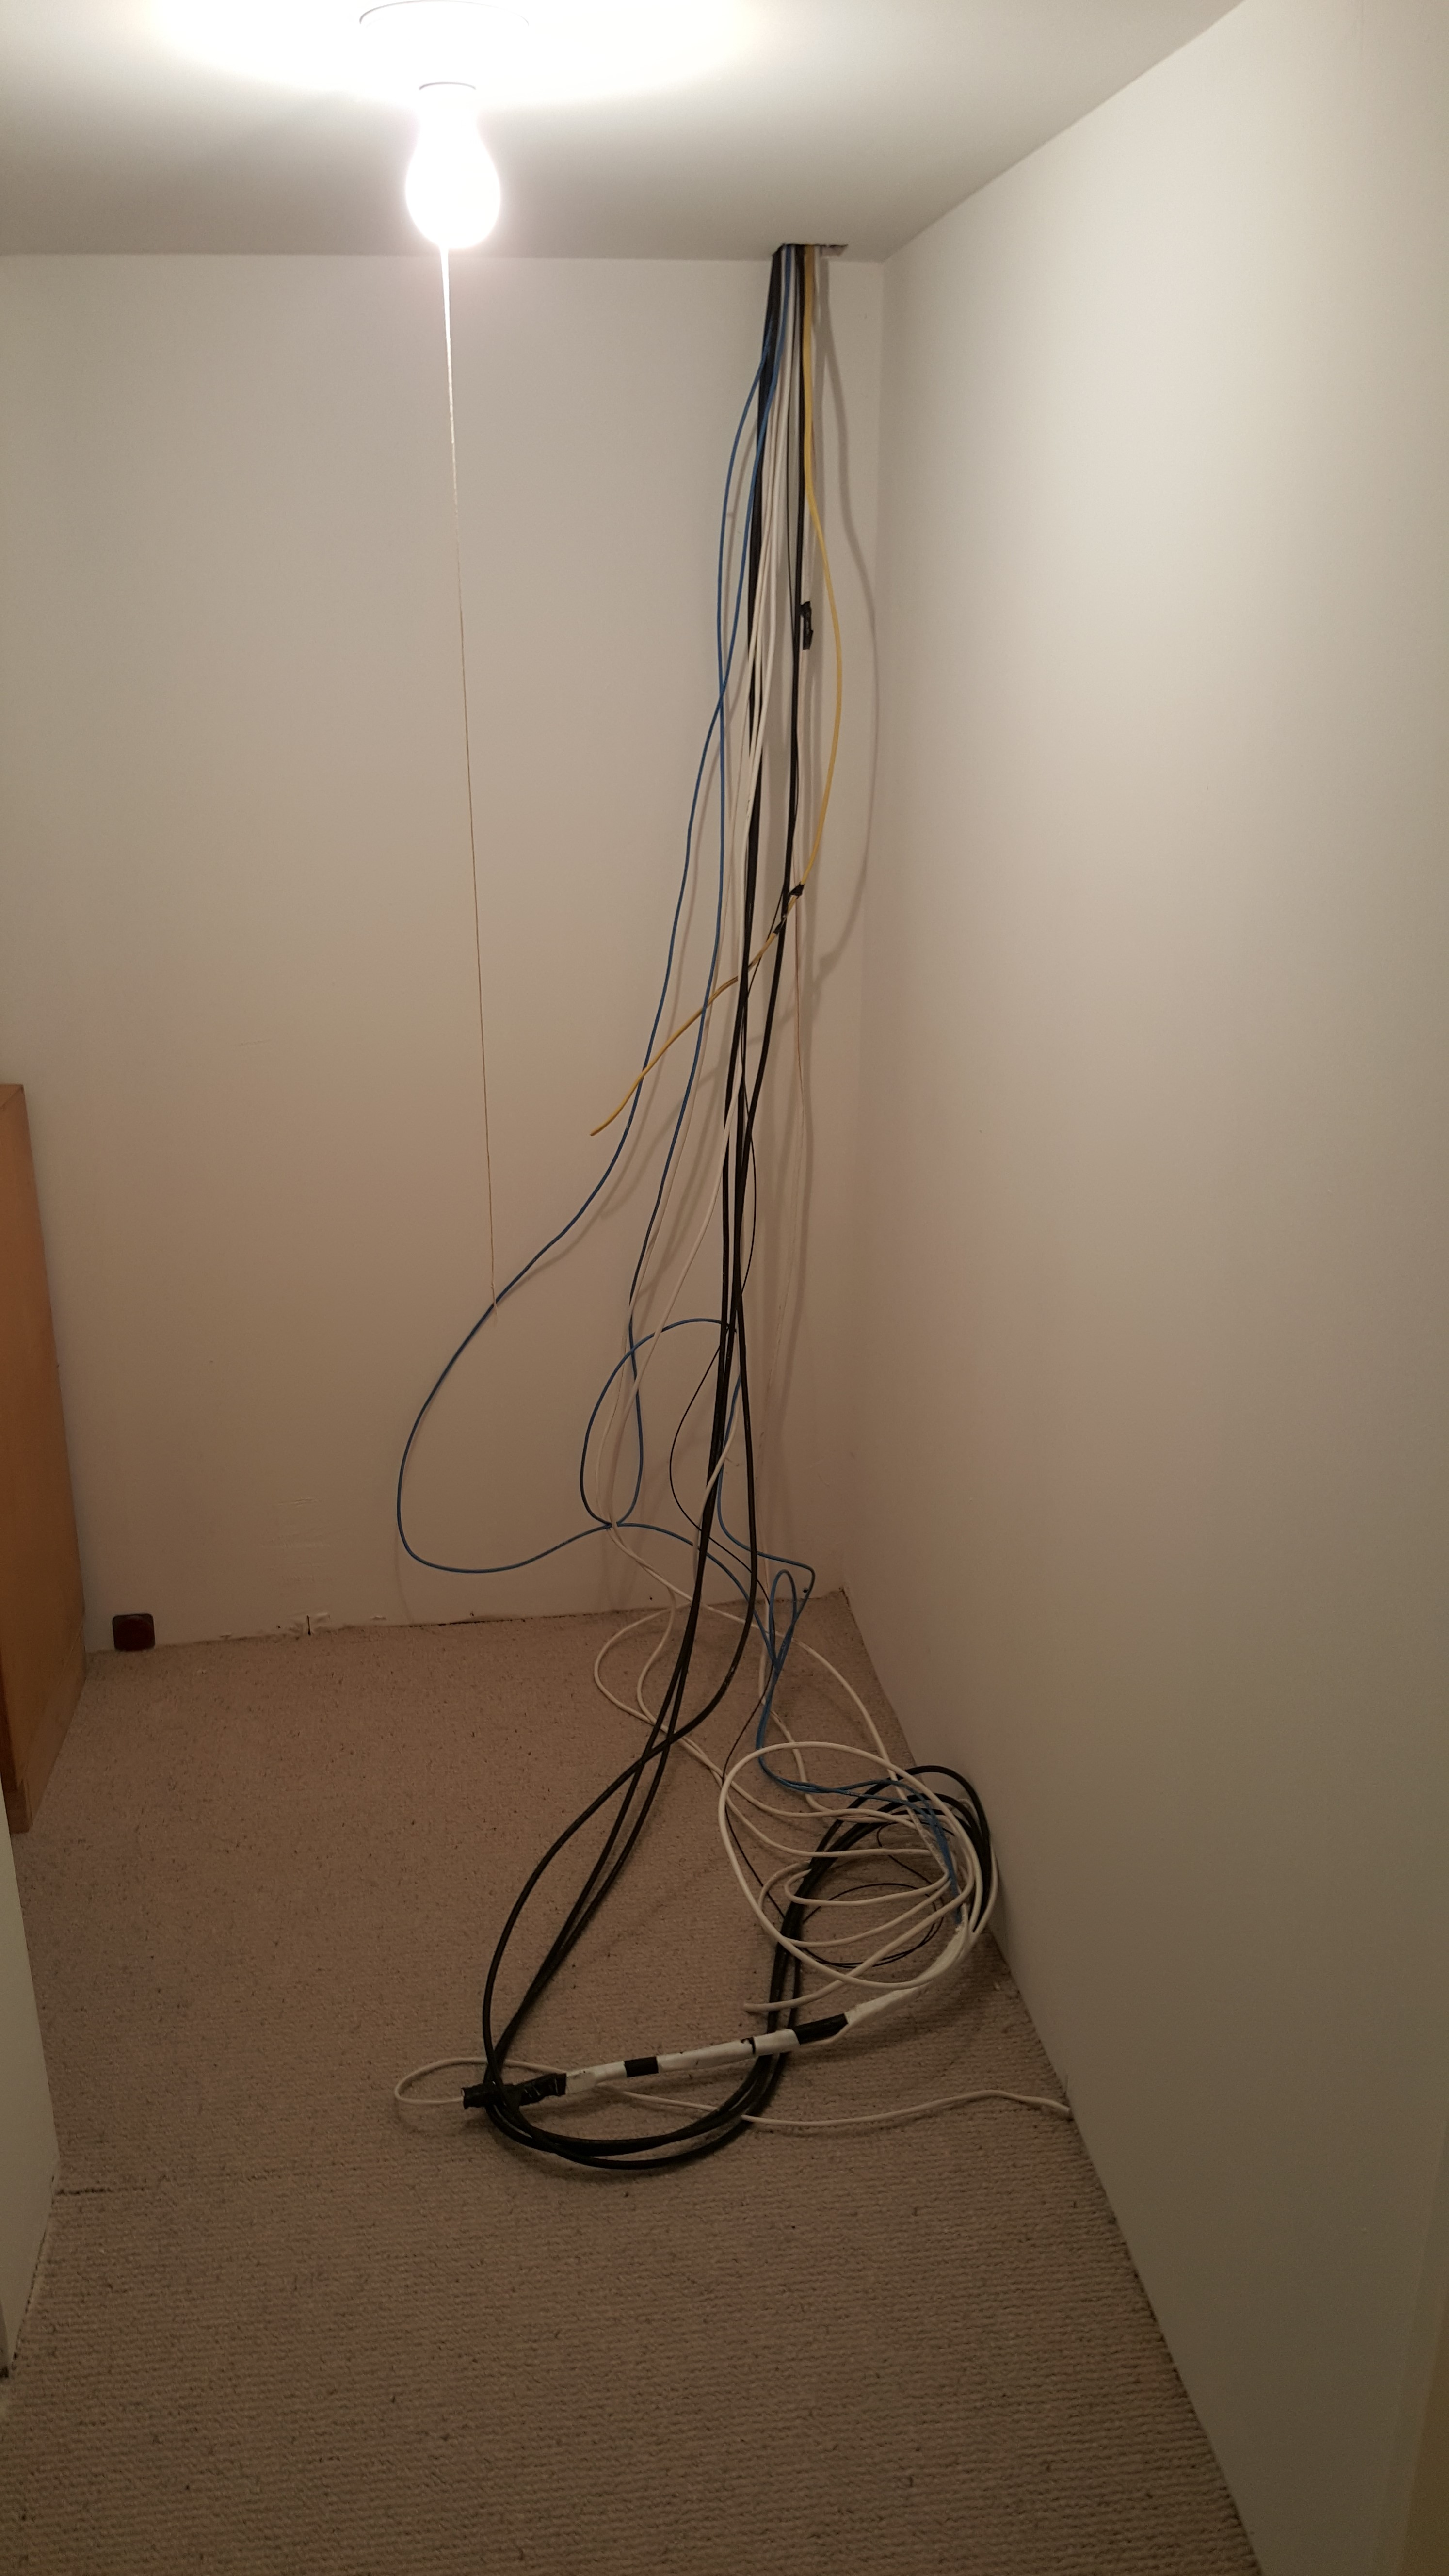 Home Theater Installation With 31 Sound Bar In Wall Sub Woofer And Wiring Basement Cable Tv Cables Running From The Television Audio Equipment Ends Up